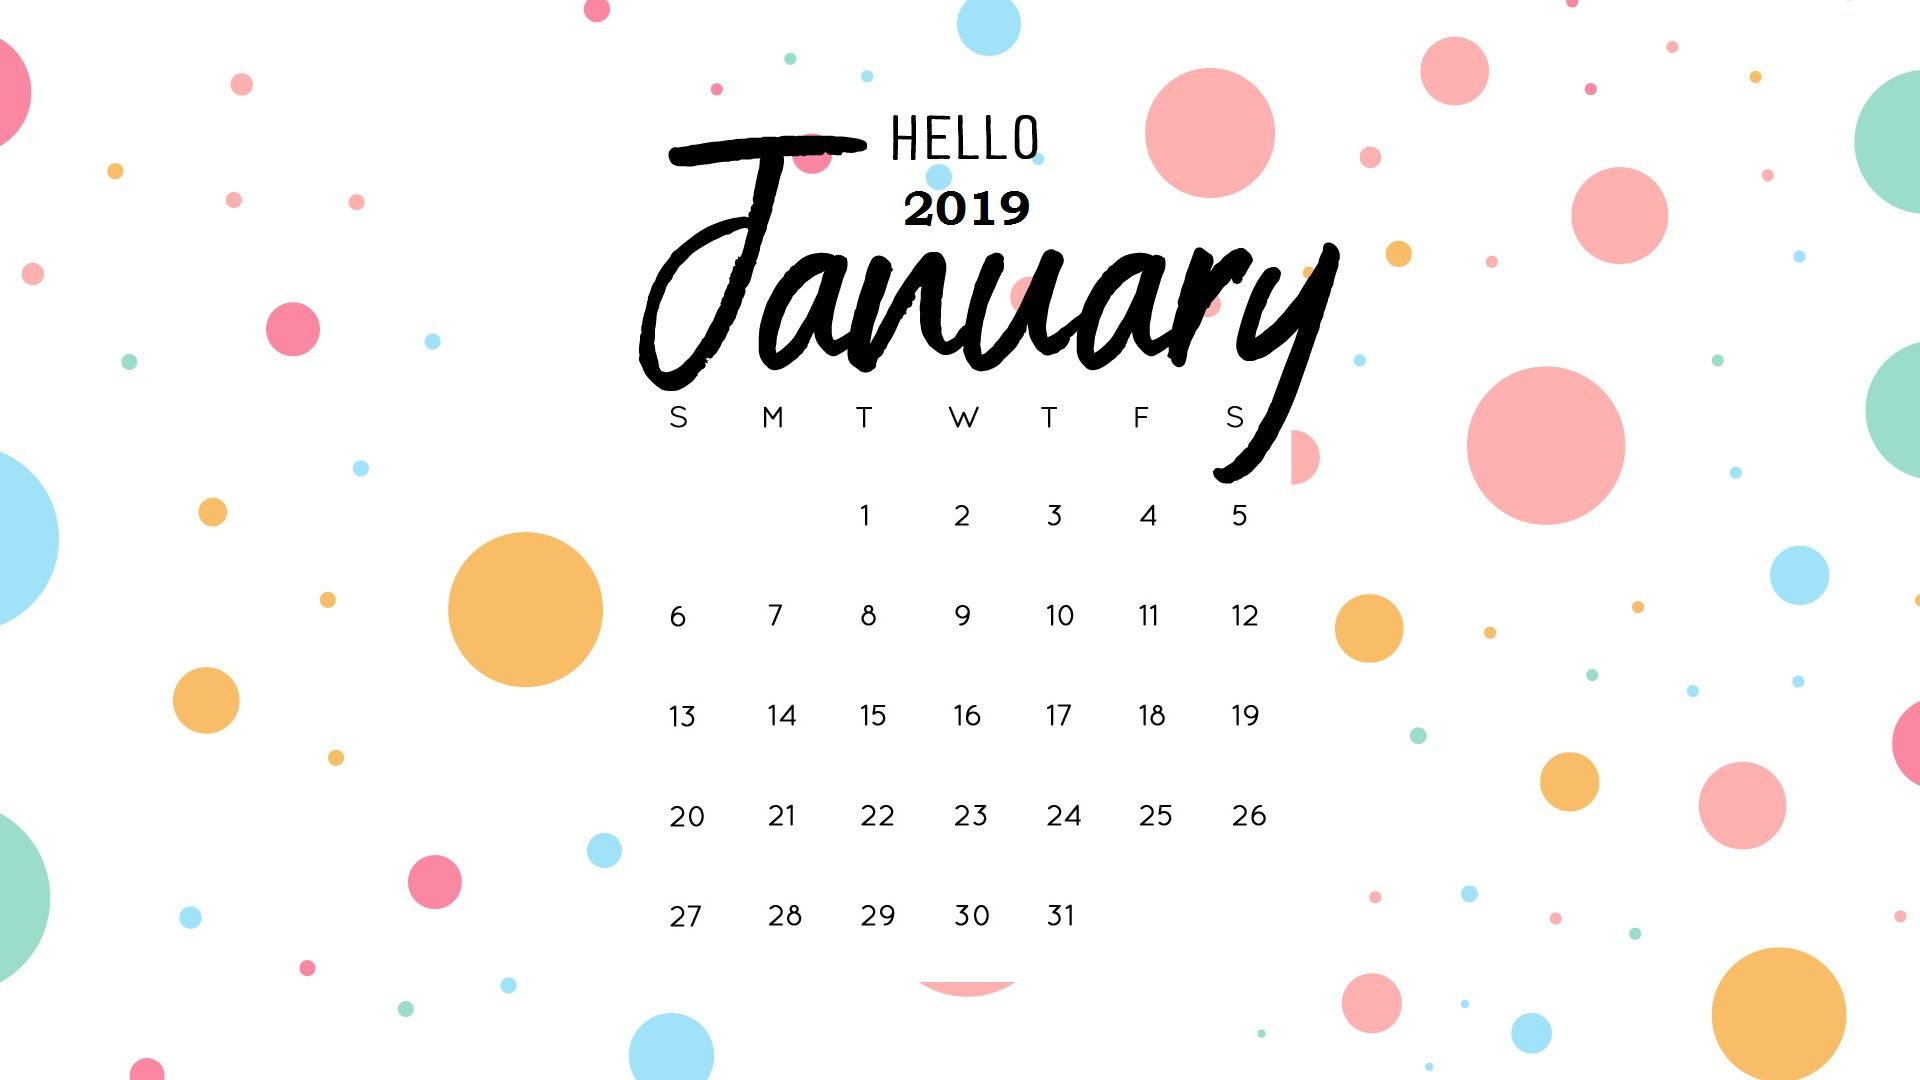 Cute January 2019 Calendar Background Wallpaper calendar background january 2019   Falco.ifreezer.co